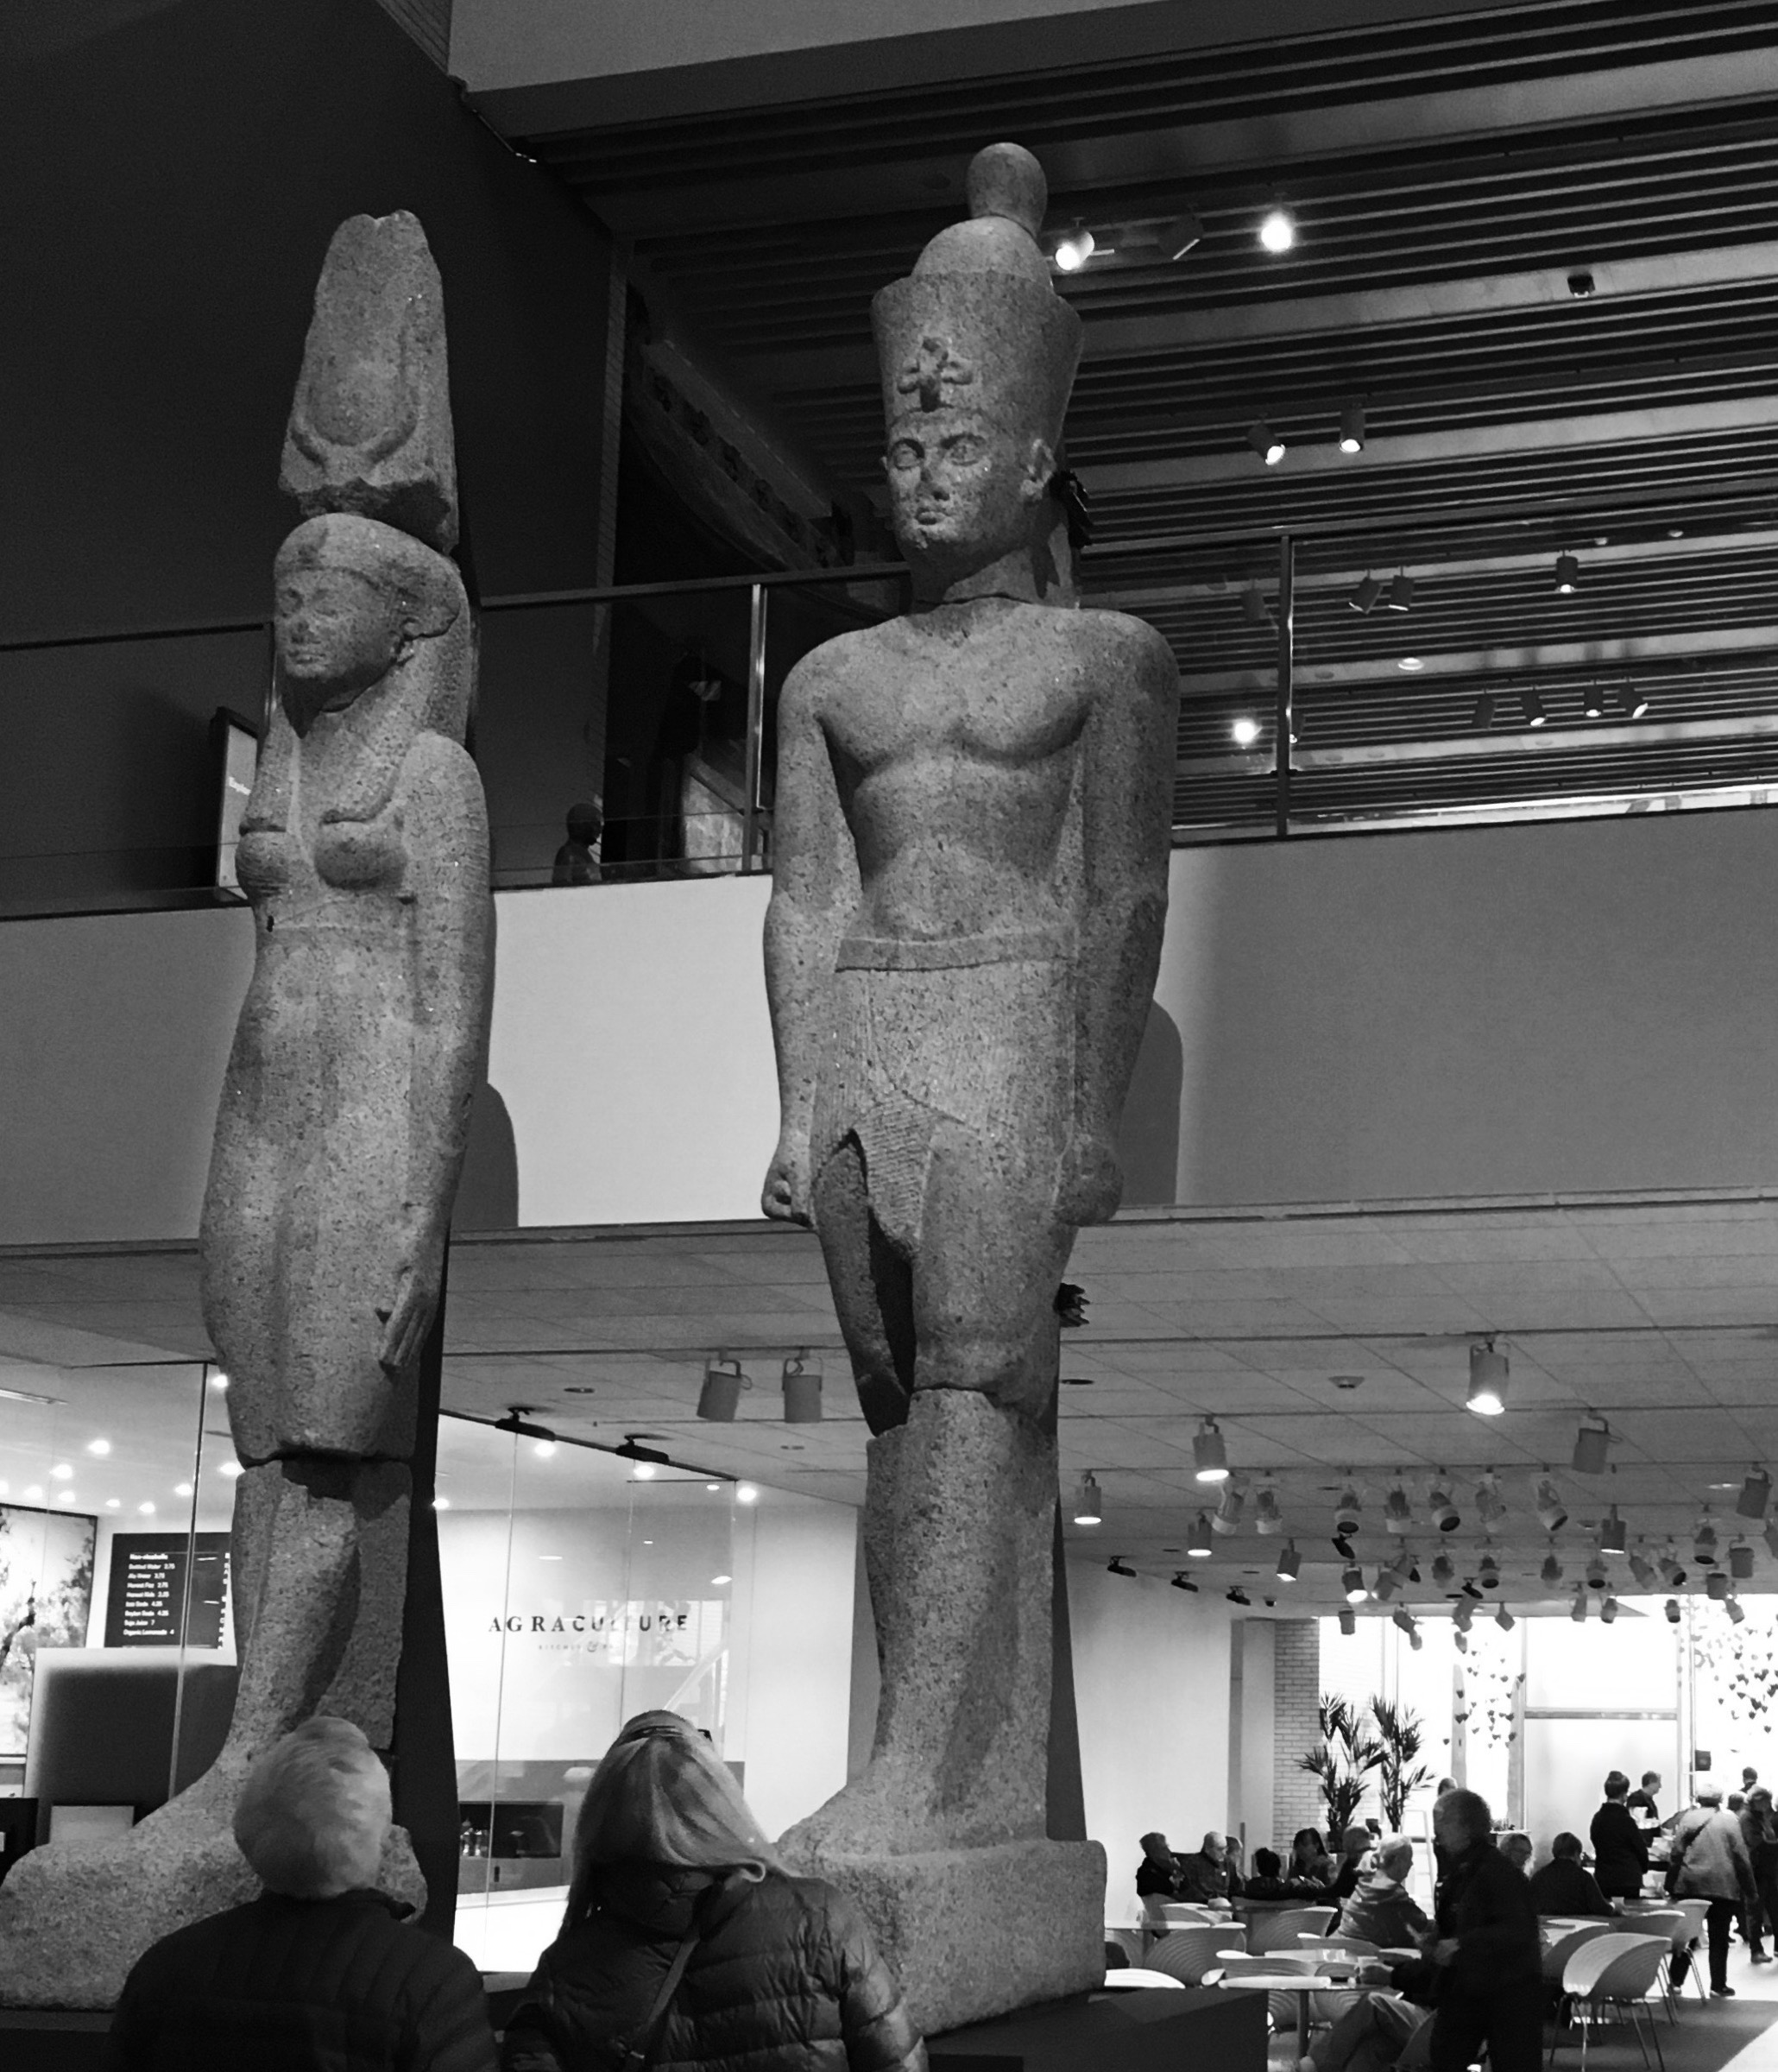 Colossi of Osiris and Isis standing roughly twenty feet tall in the foyer of the museum